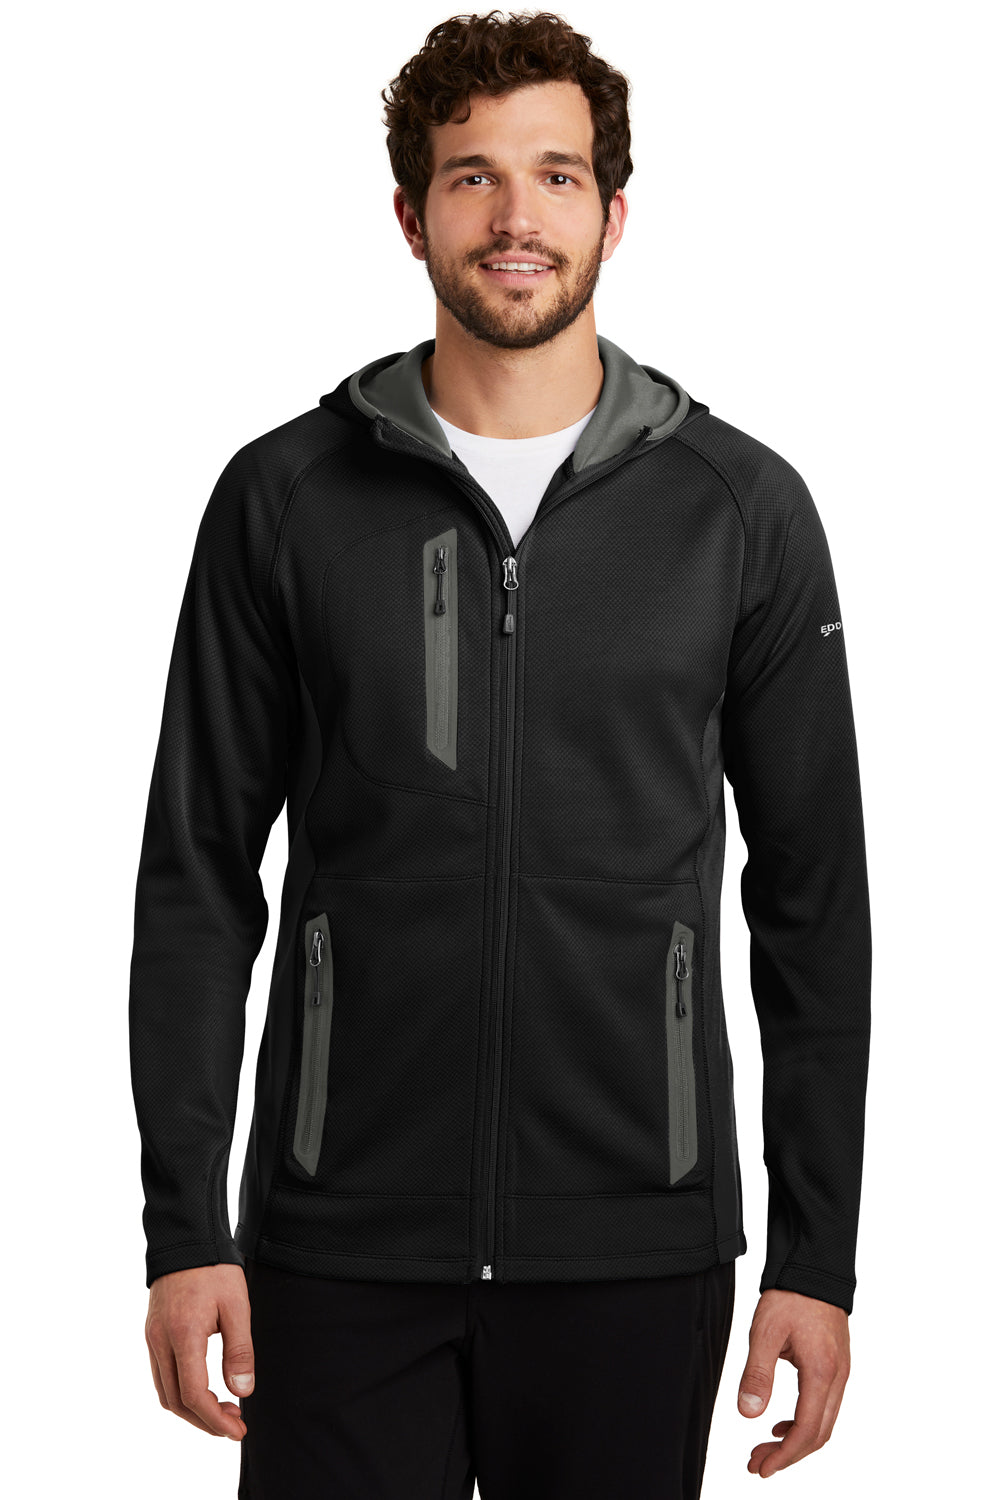 Eddie Bauer EB244 Mens Sport Full Zip Fleece Hooded Jacket Black Front